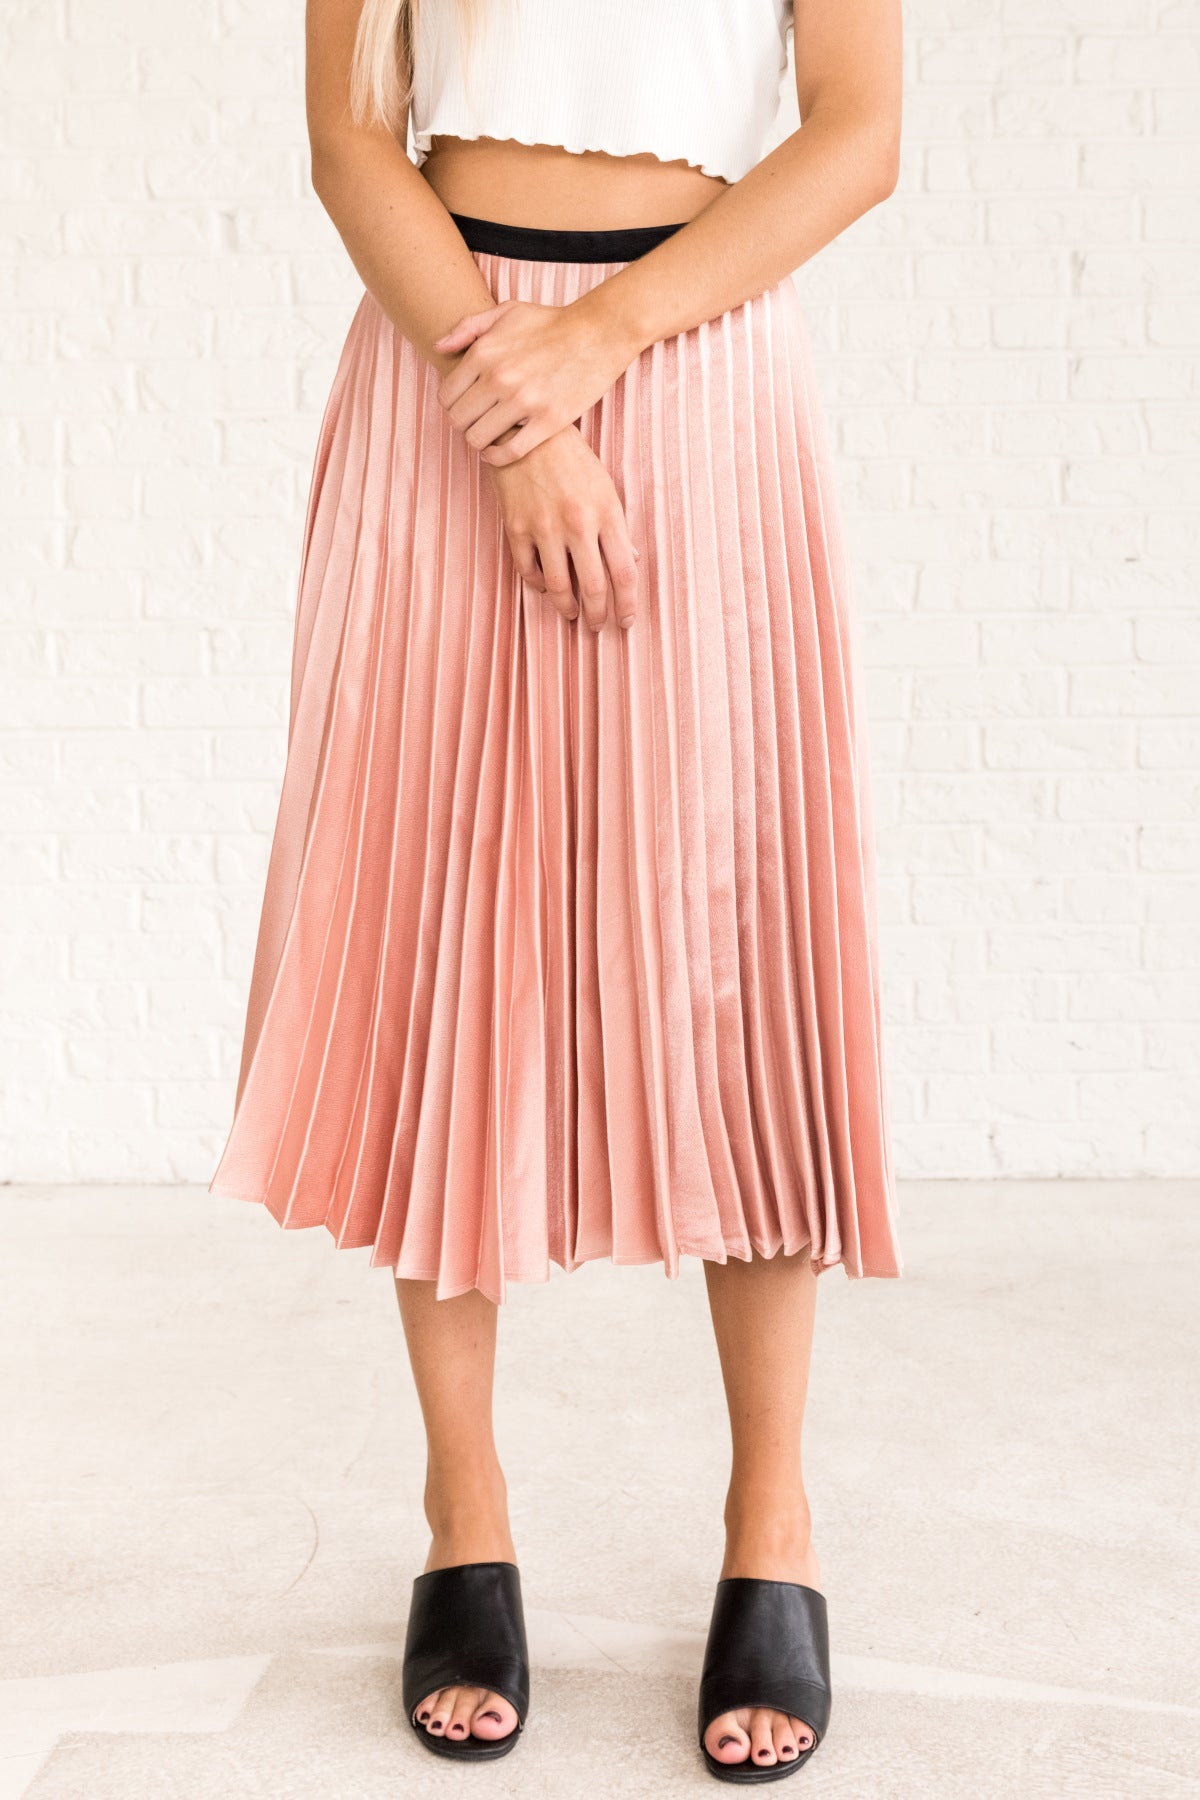 Pink Metallic Cute Midi Skirt with Zipper and Black Waistband